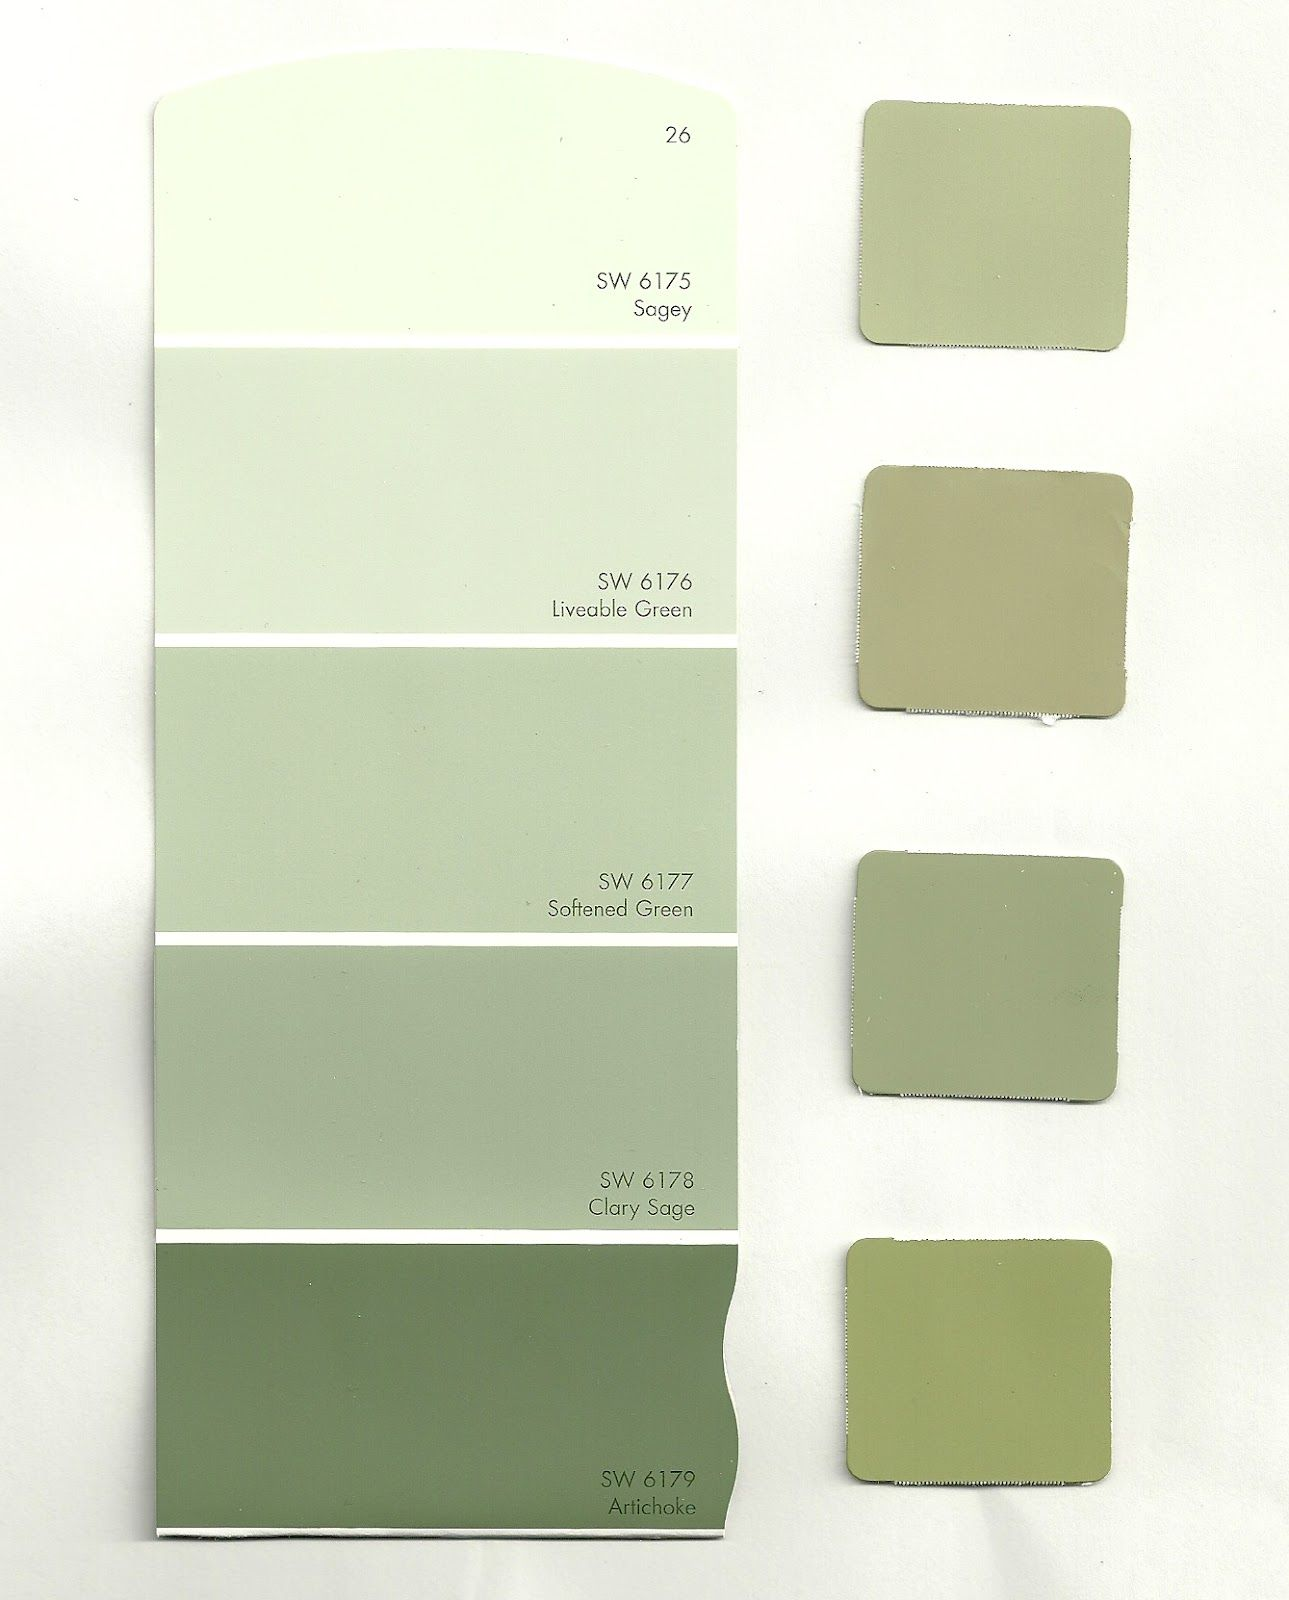 Sherwin Williams Green Paint Colors | We are looking for a middle ...